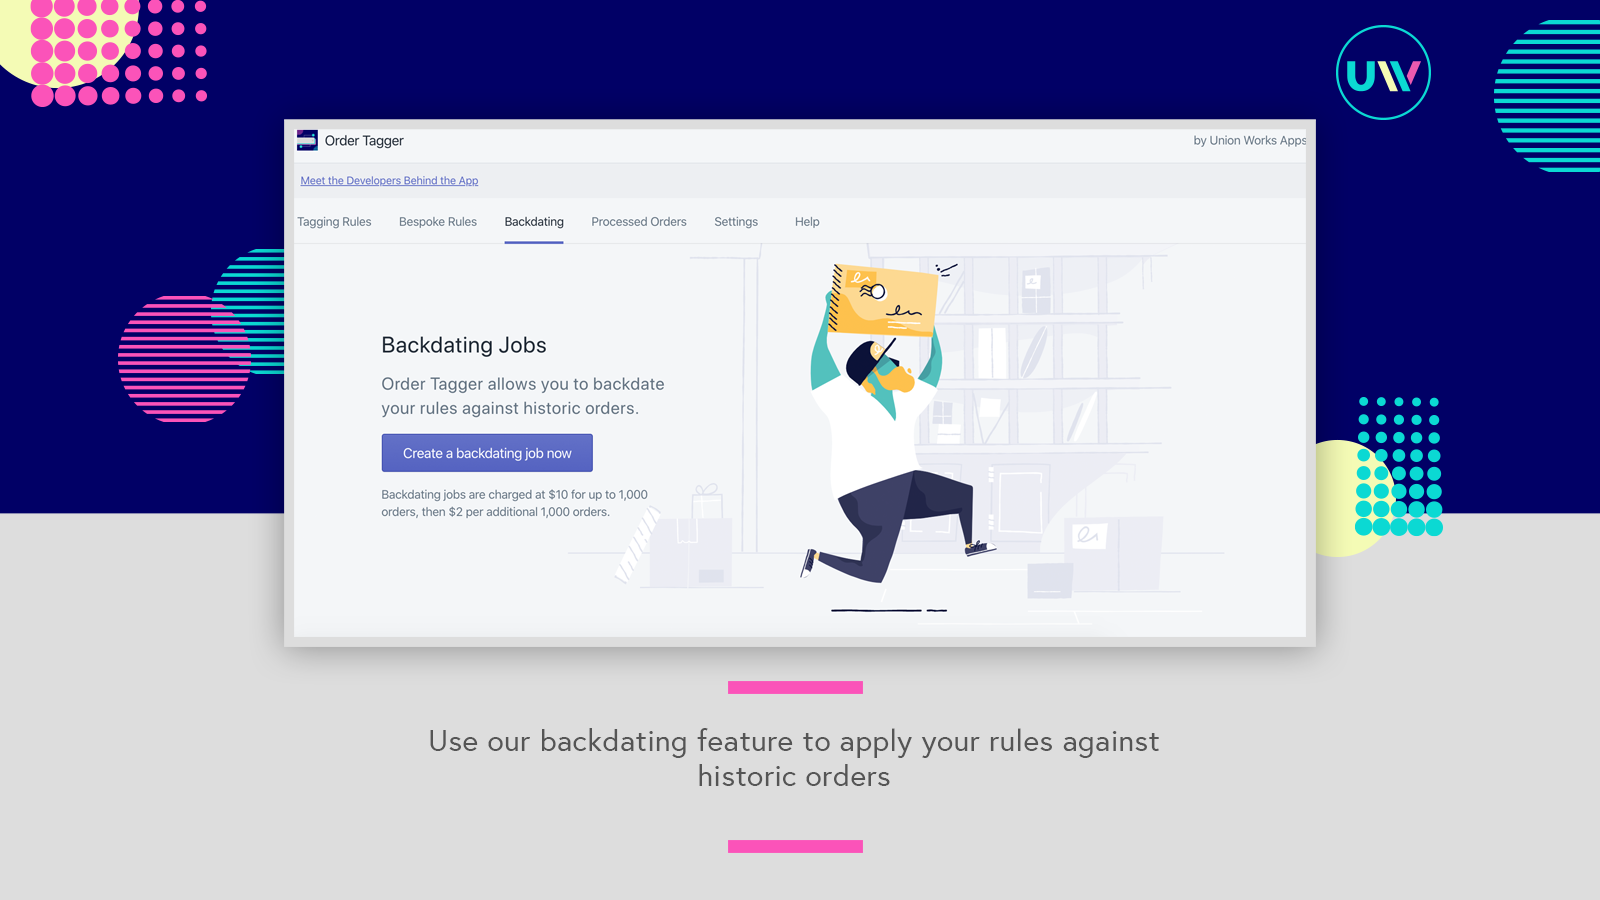 Apply your workflows to past orders using our backdating feature